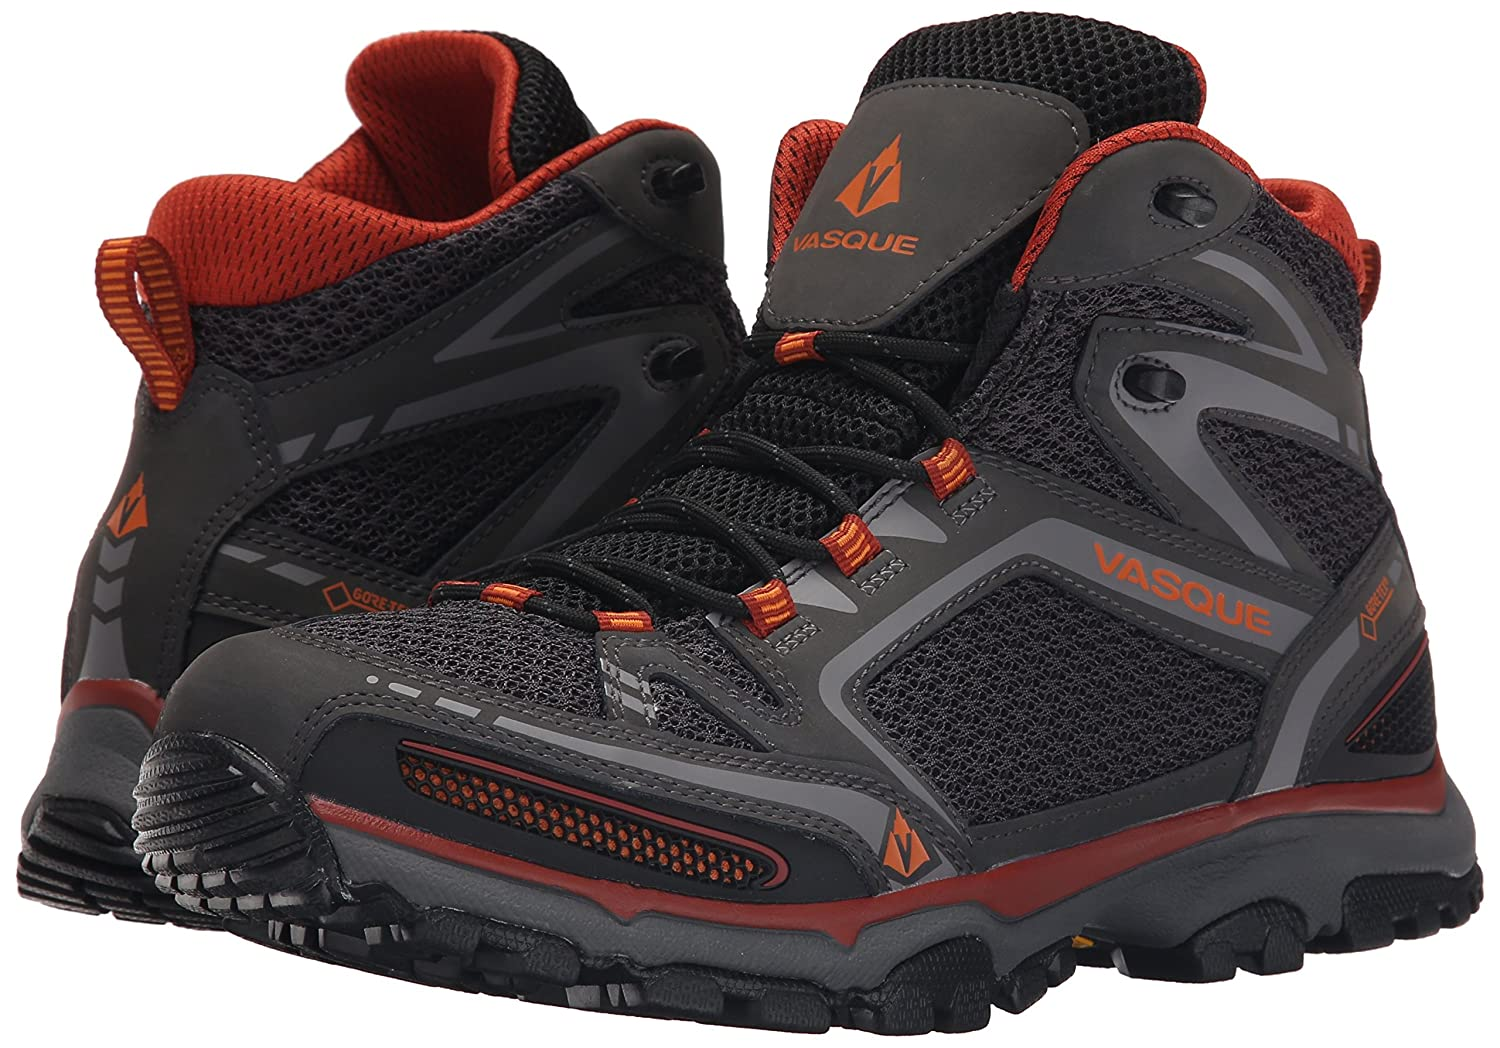 Vasque Mens Inhaler II Gore-Tex Hiking Boot INHALER II GTX-M